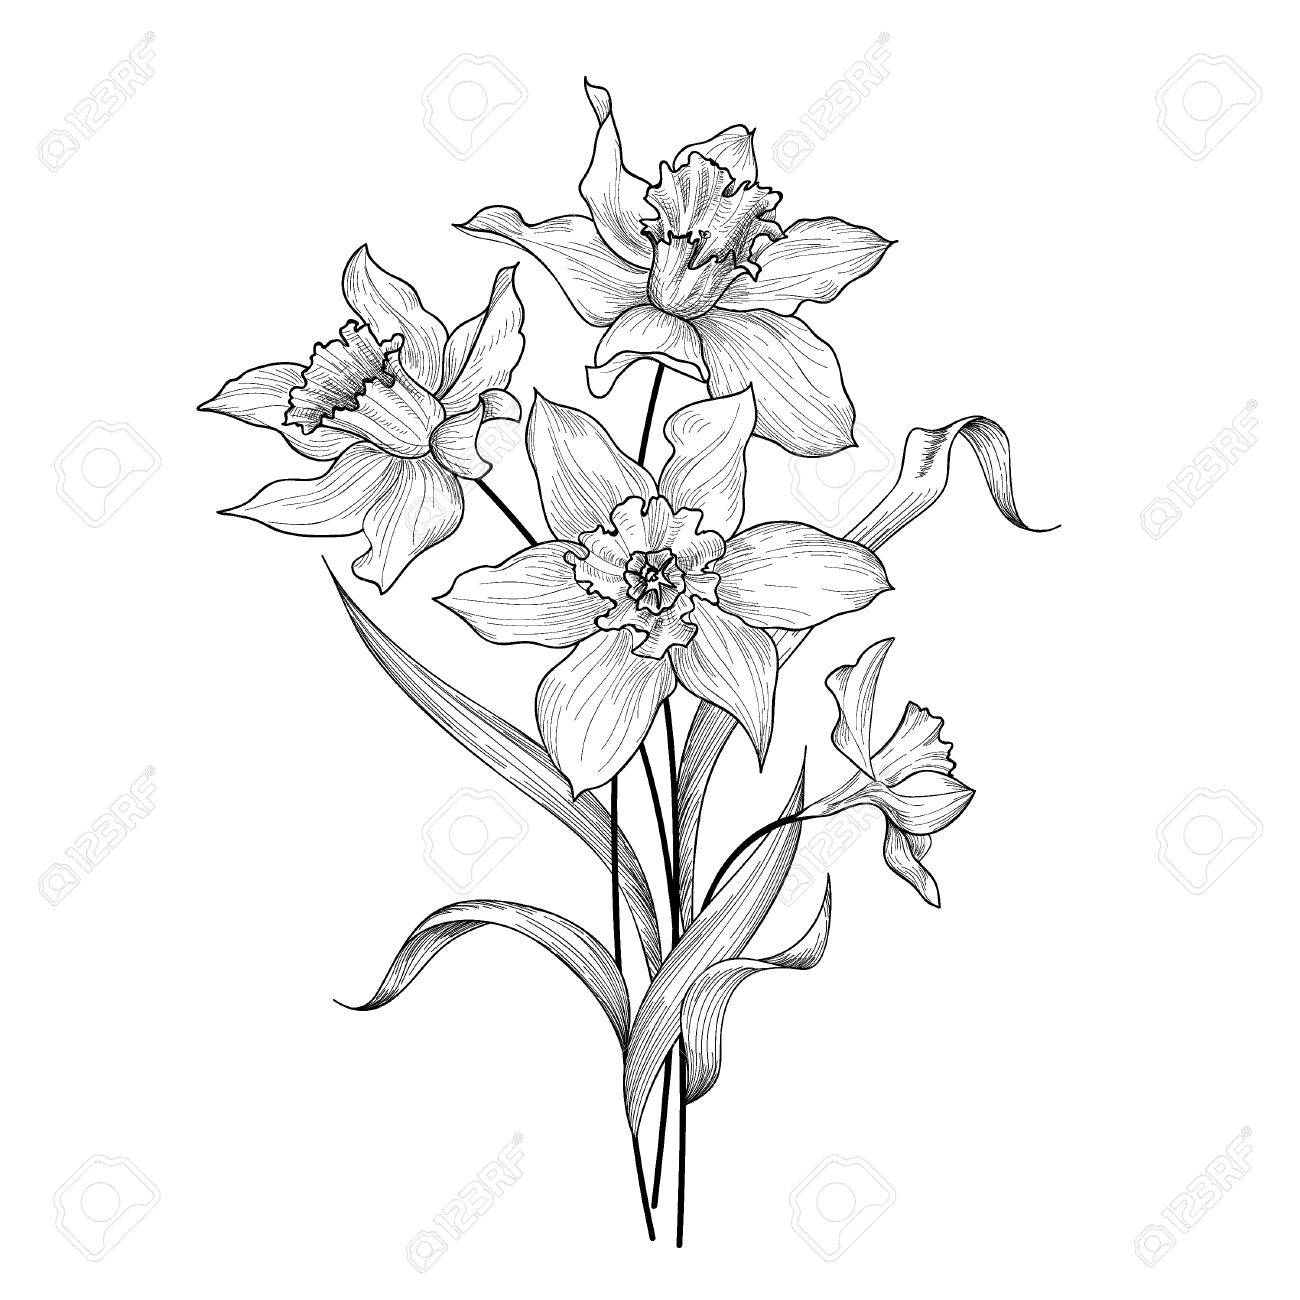 1300x1300 Floral Bouquet. Flower Daffodil Engraving Background. Floral